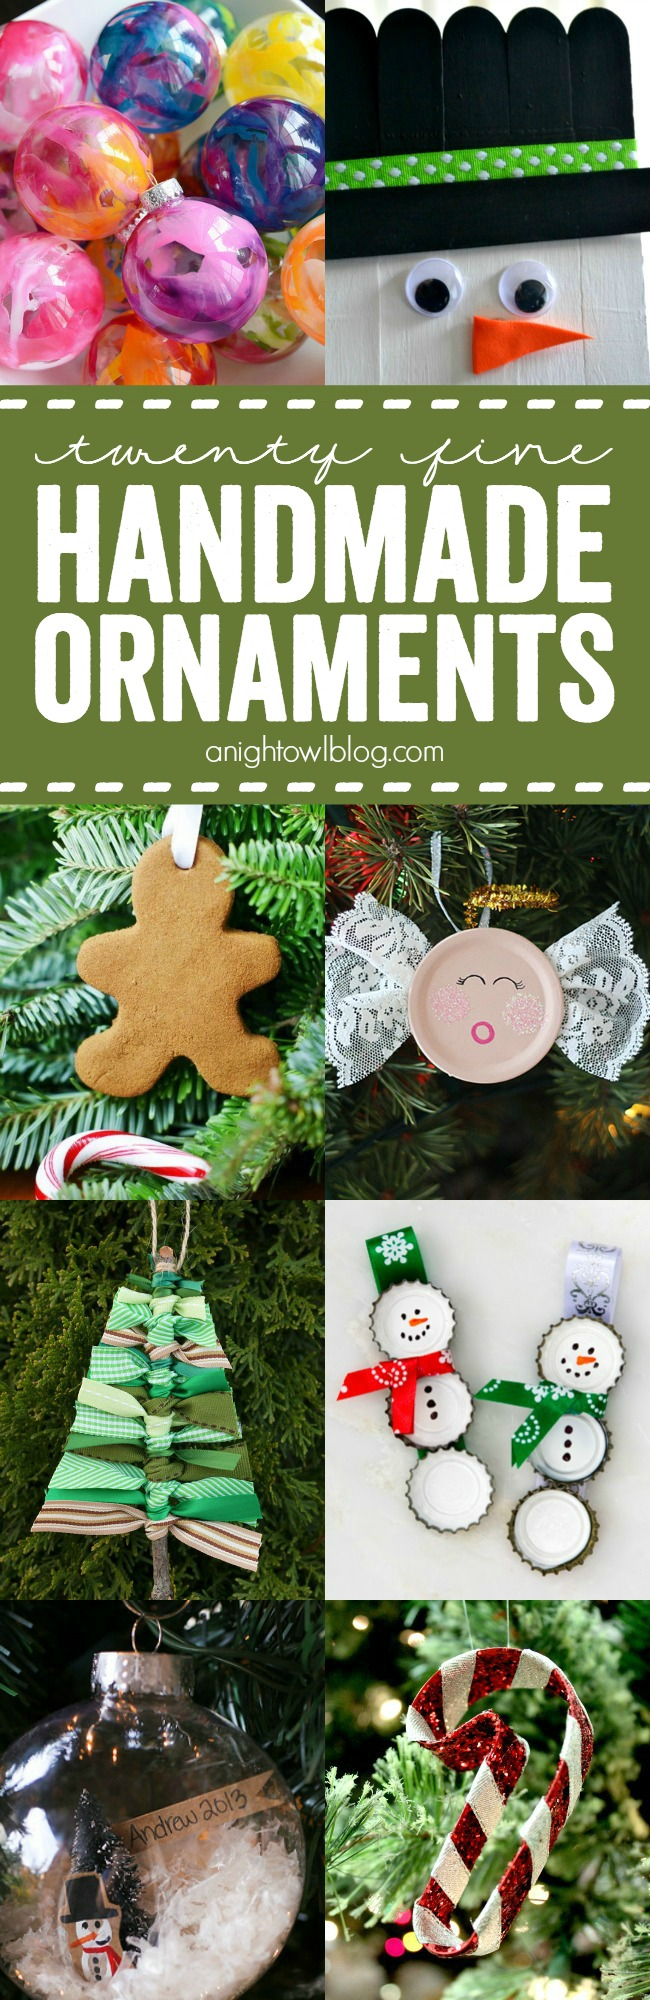 So many cute Handmade Christmas Ornaments! Fun ideas to make with the kids this year!